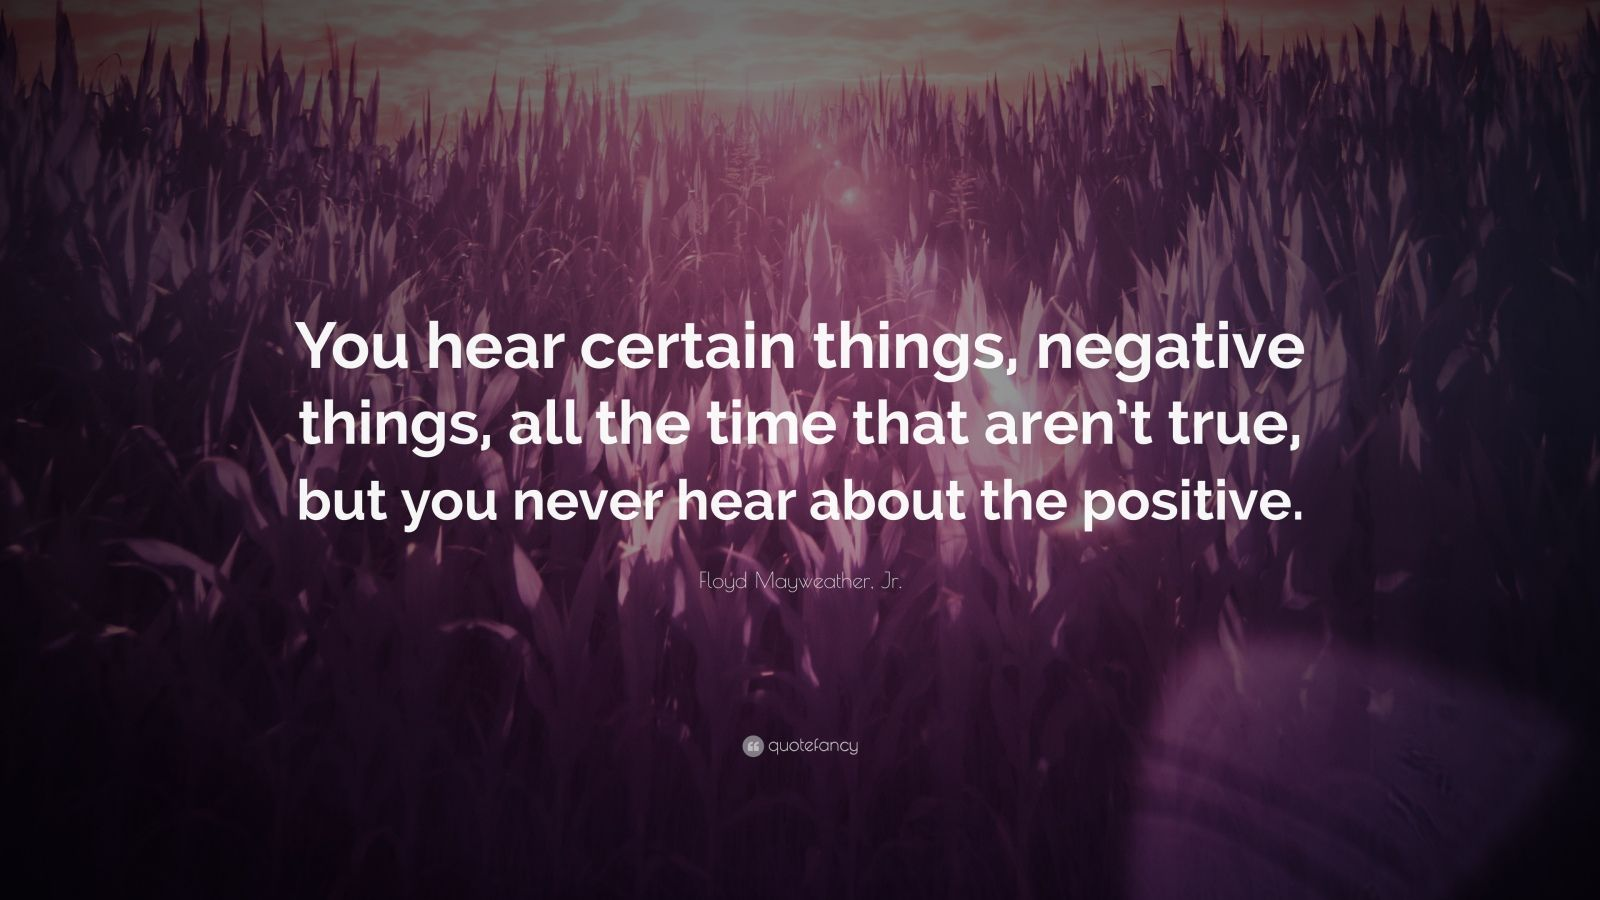 """Floyd Mayweather, Jr. Quote: """"You hear certain things, negative things, all the time that aren't true, but you never hear about the positive."""""""